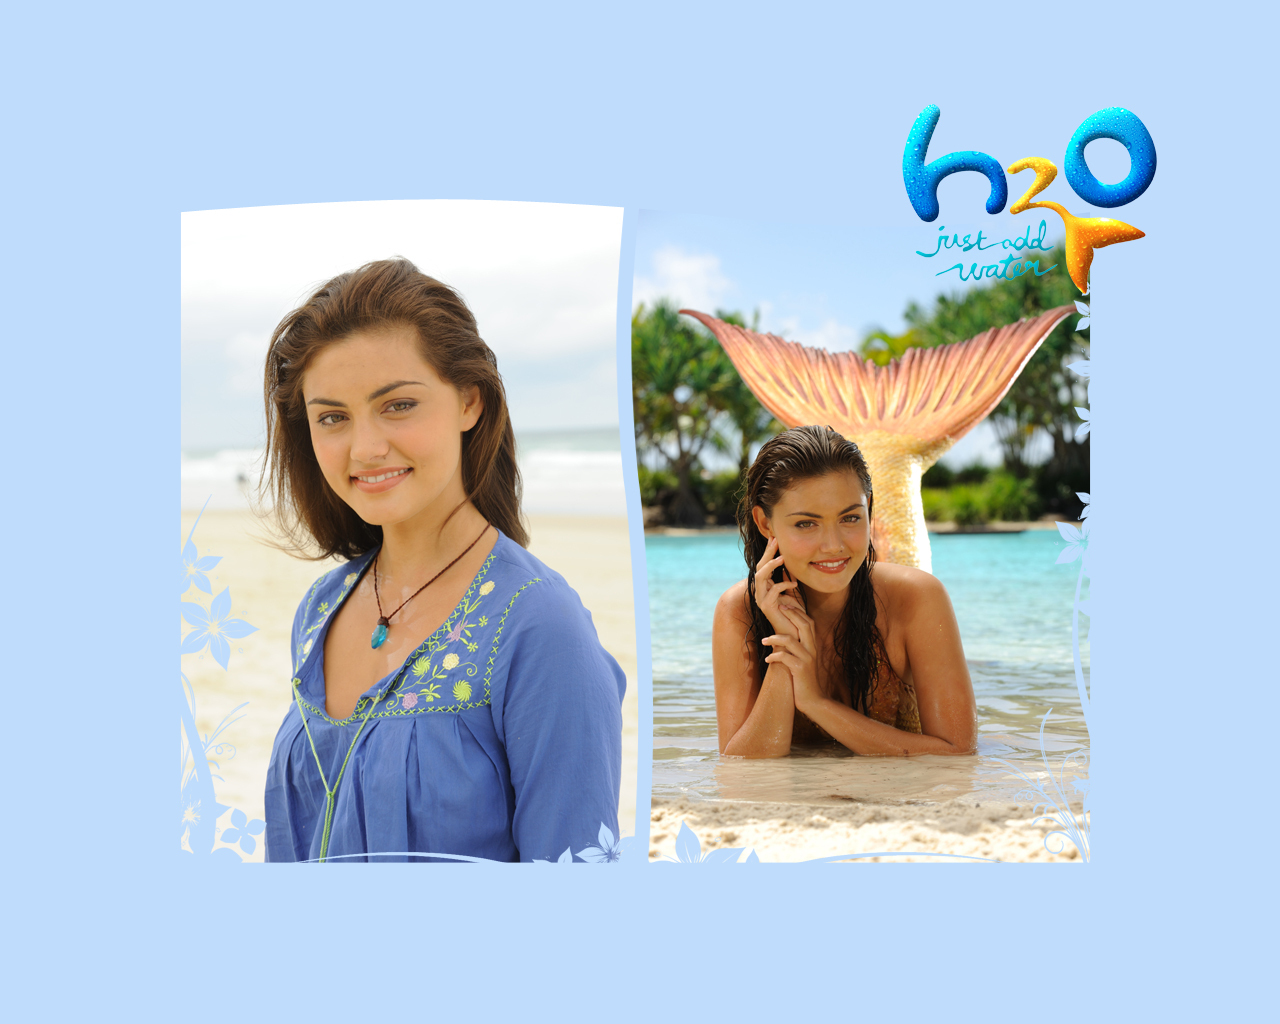 H2o just add water season 3 h2o just add water season 3 for H2o season 2